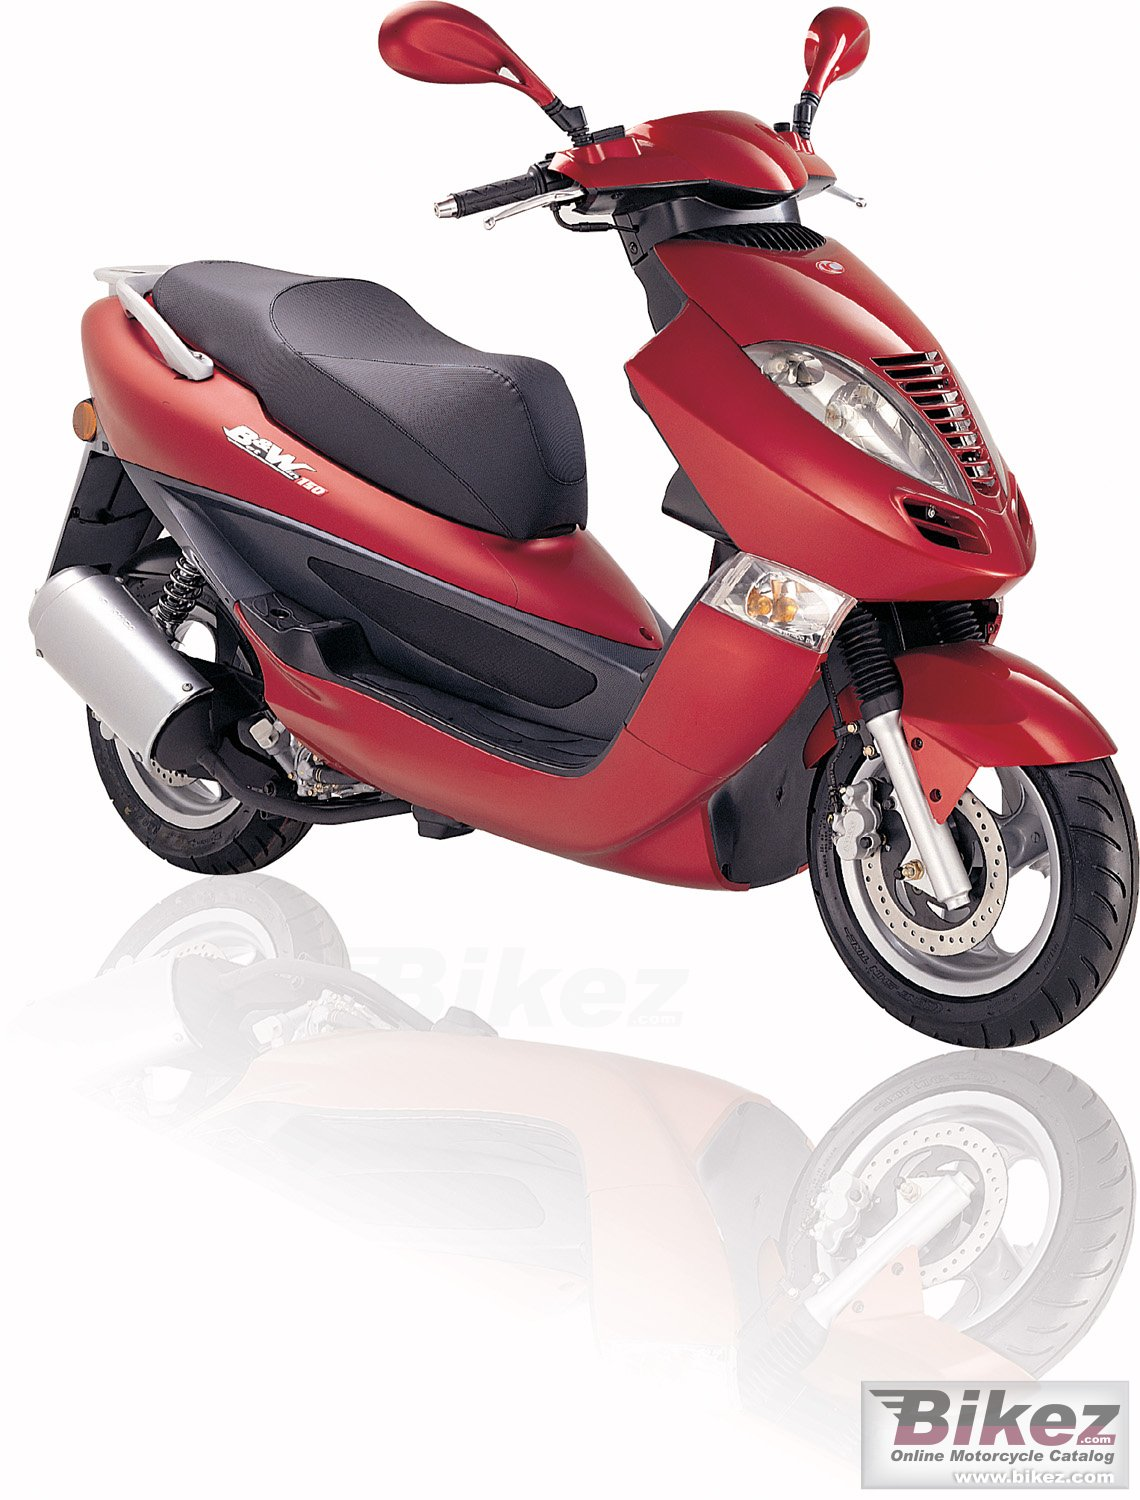 Kymco bet and win 150